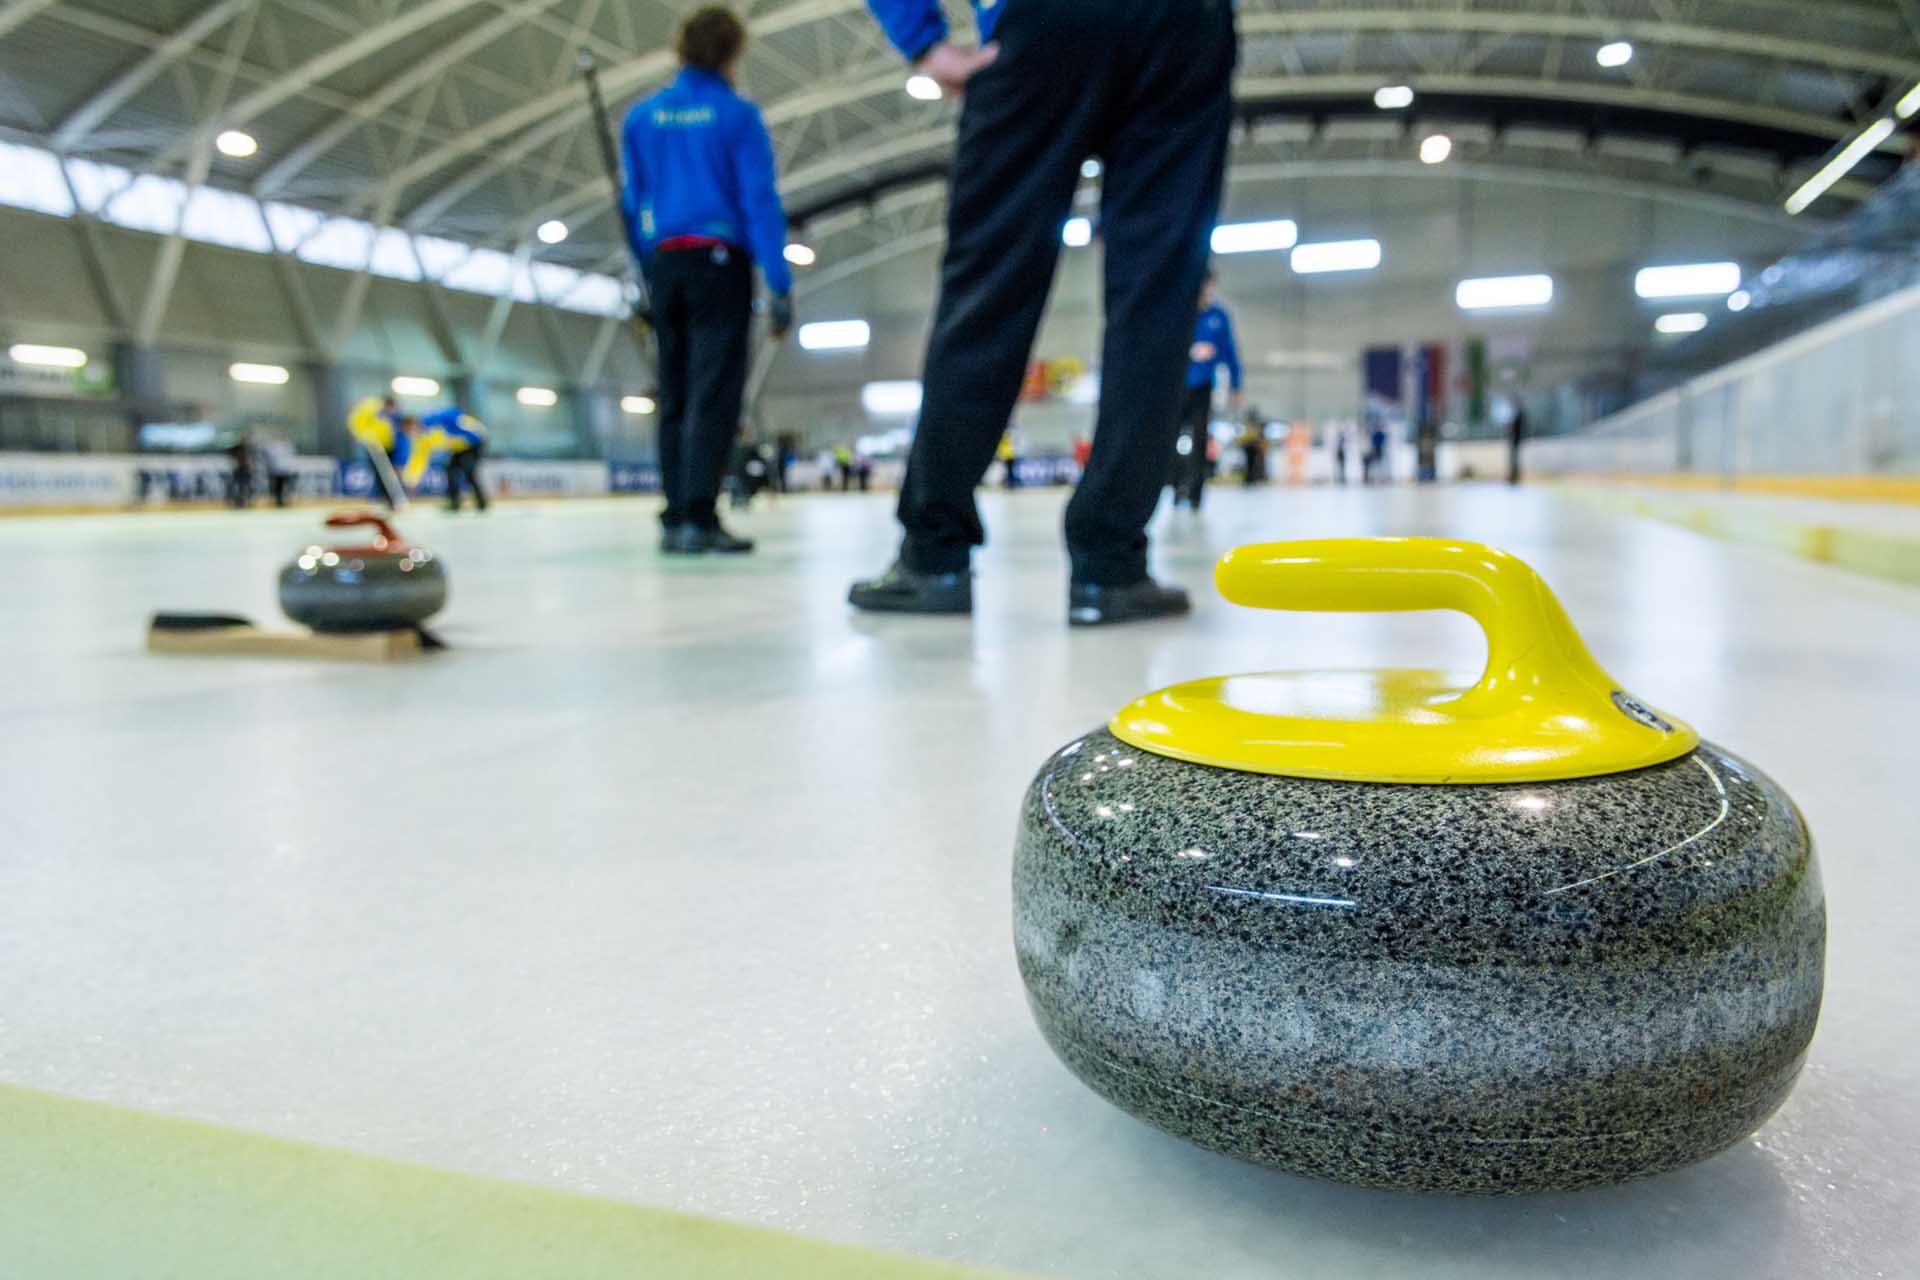 Curling stone on a game sheet